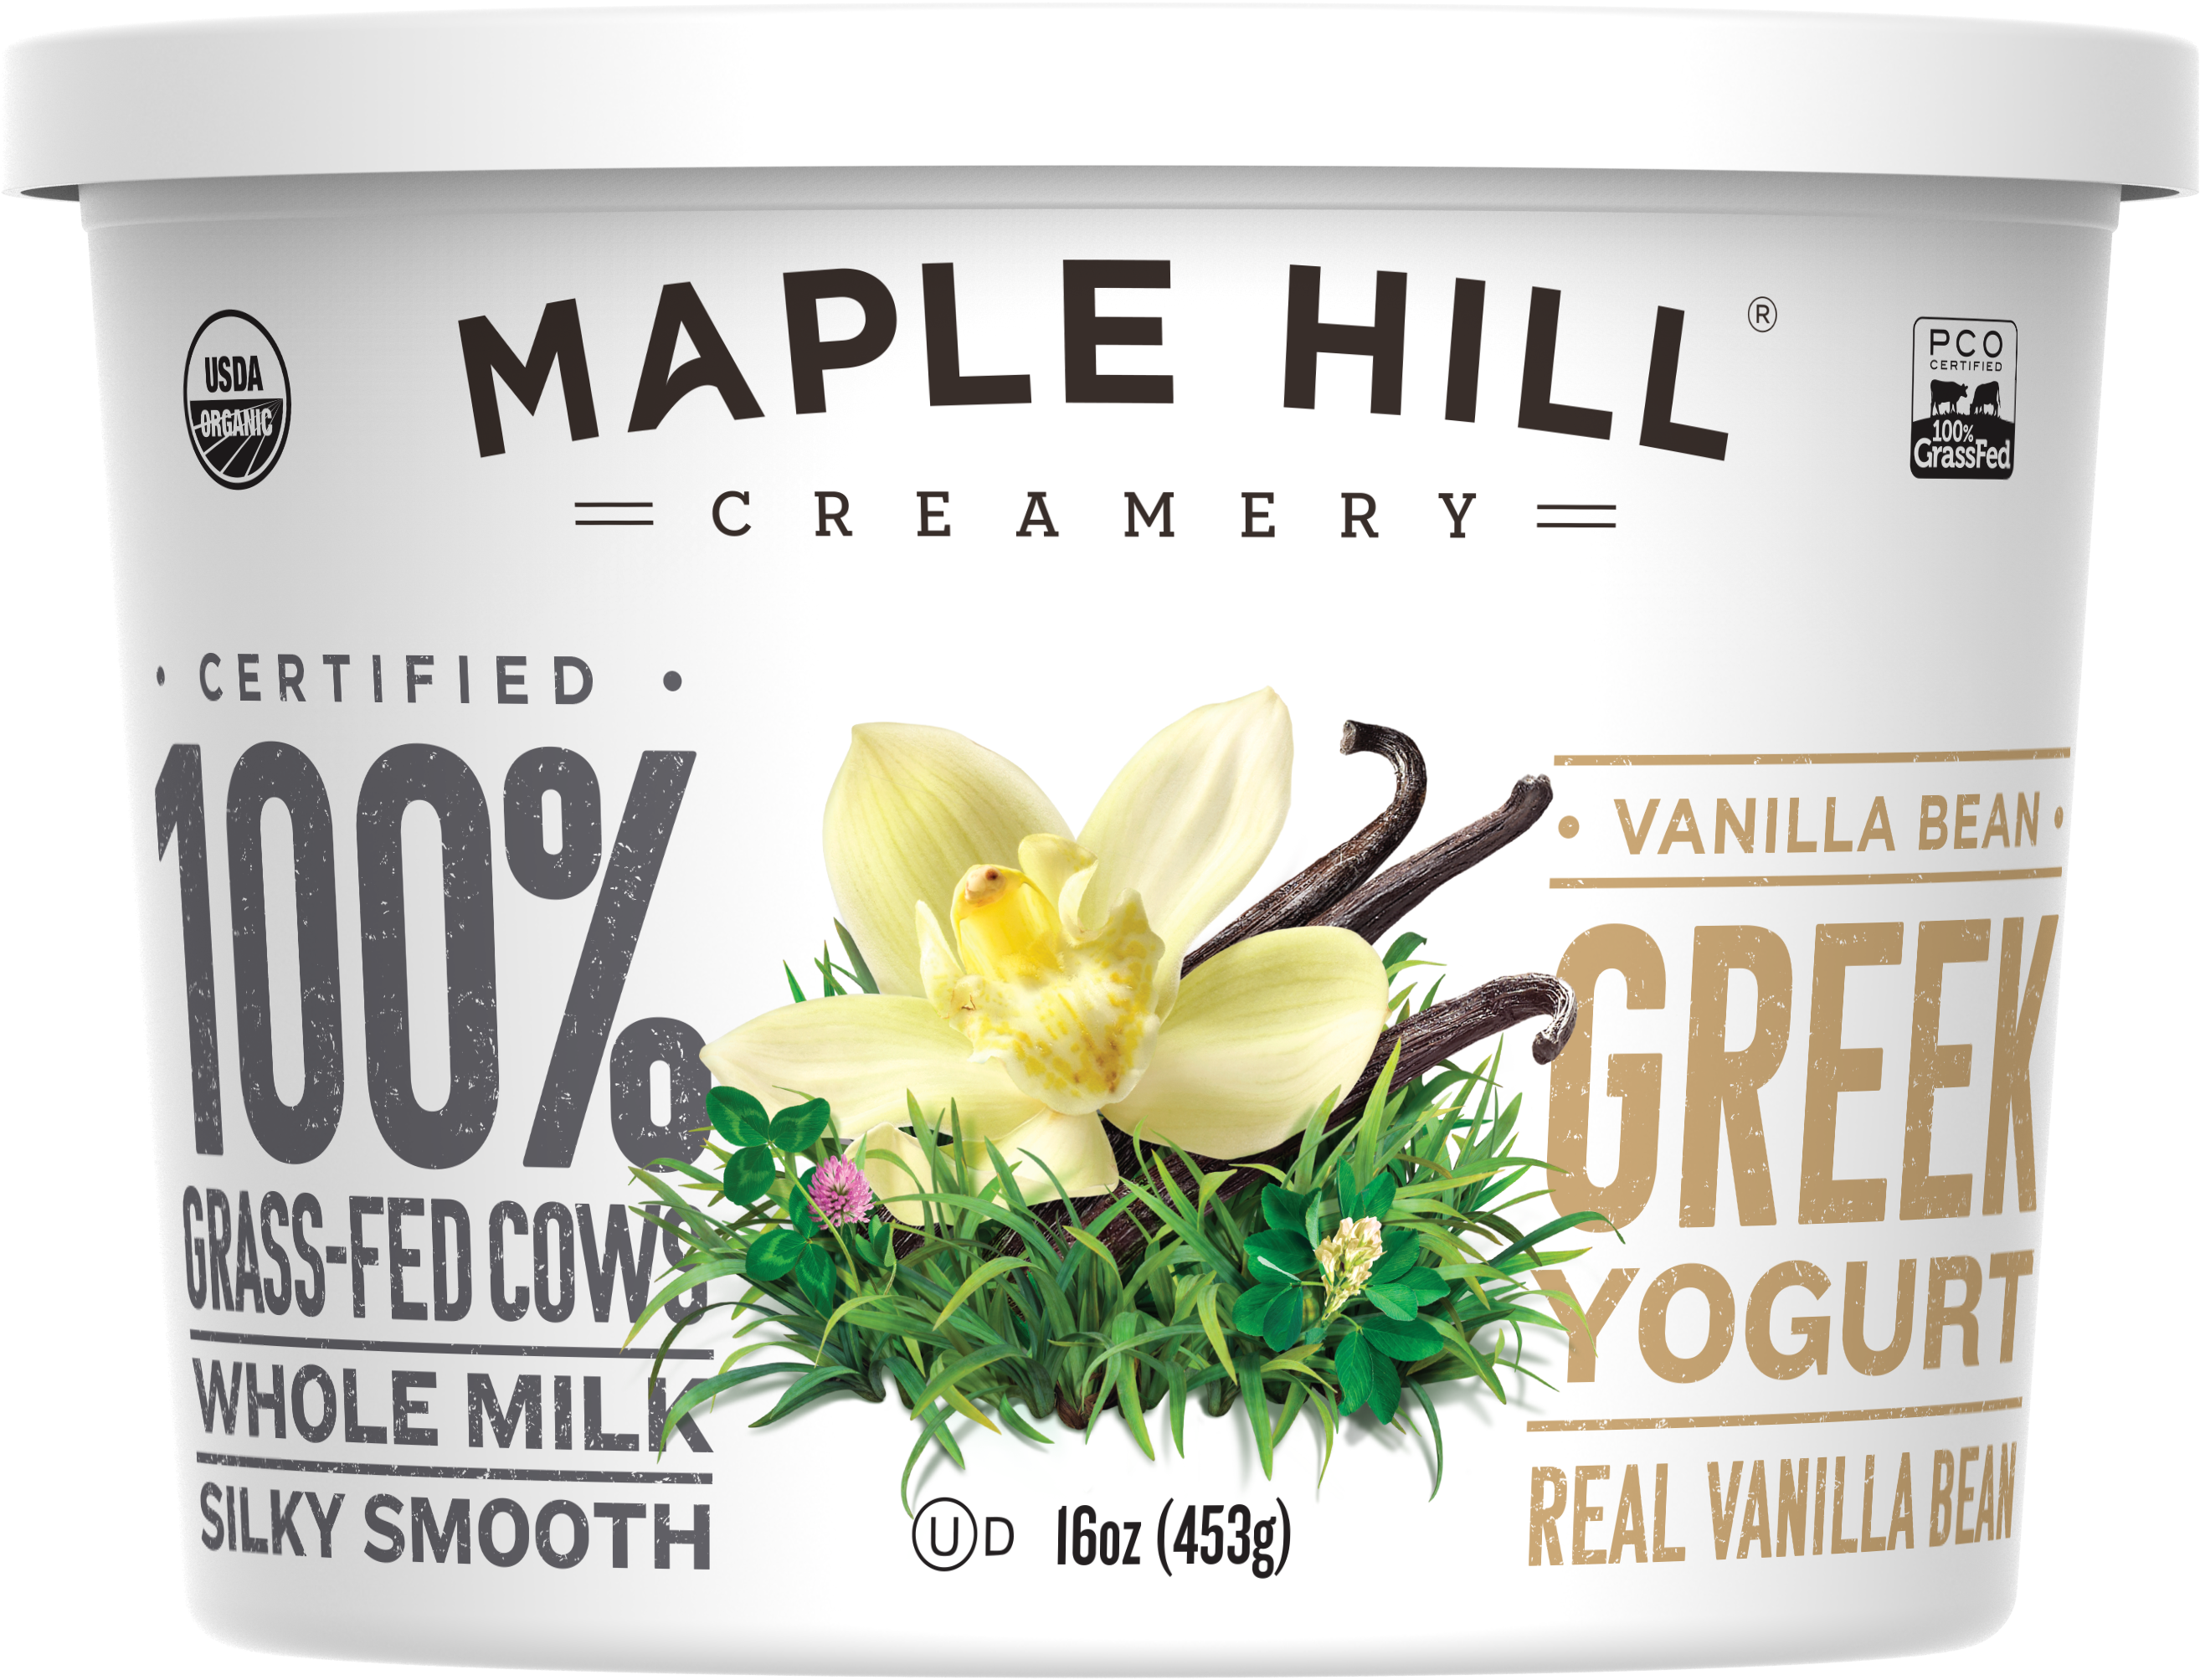 Maple Hill Creamery: Whole Milk Greek Yogurt